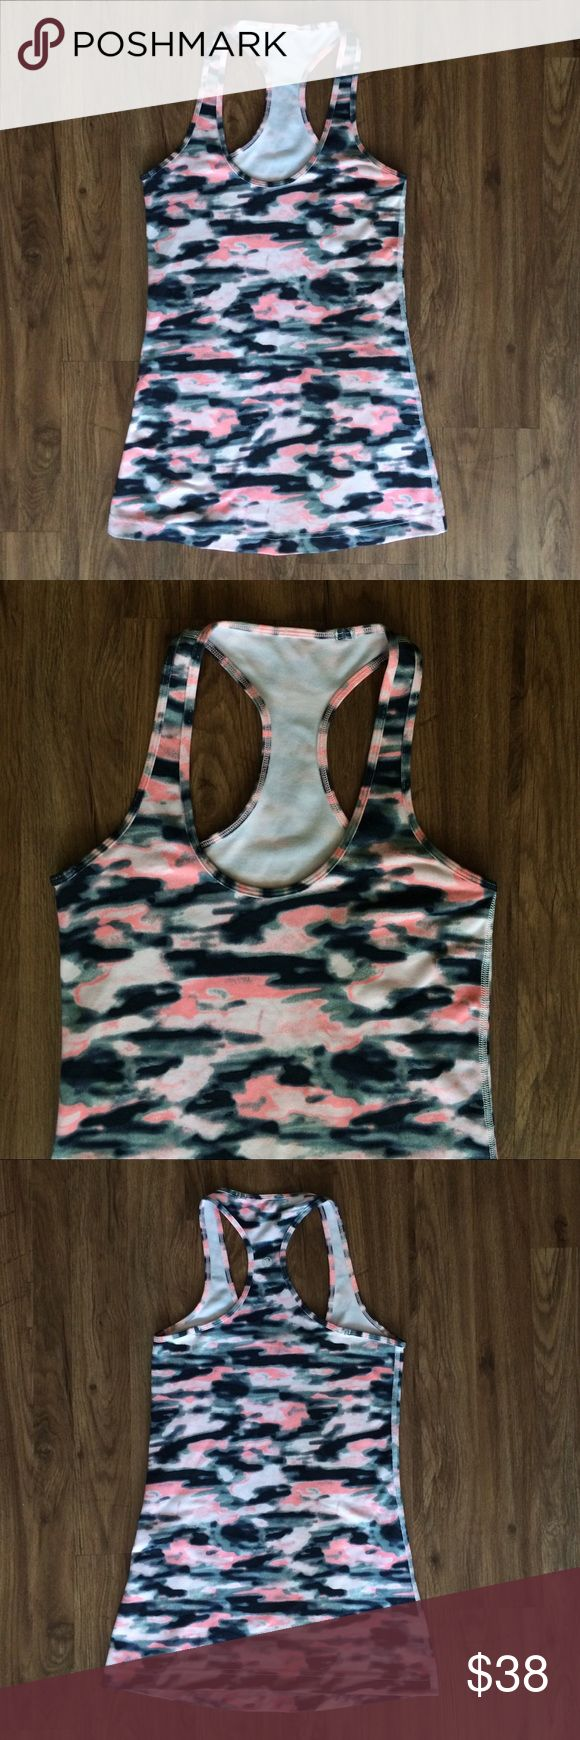 Lulu Cool Racerback Wamo Camo Lululemon Cool Racerback in Wamo Camo print. Size 4. Excellent condition, worn once. Great for yoga, running, going to the gym, just about anything! lululemon athletica Tops Tank Tops